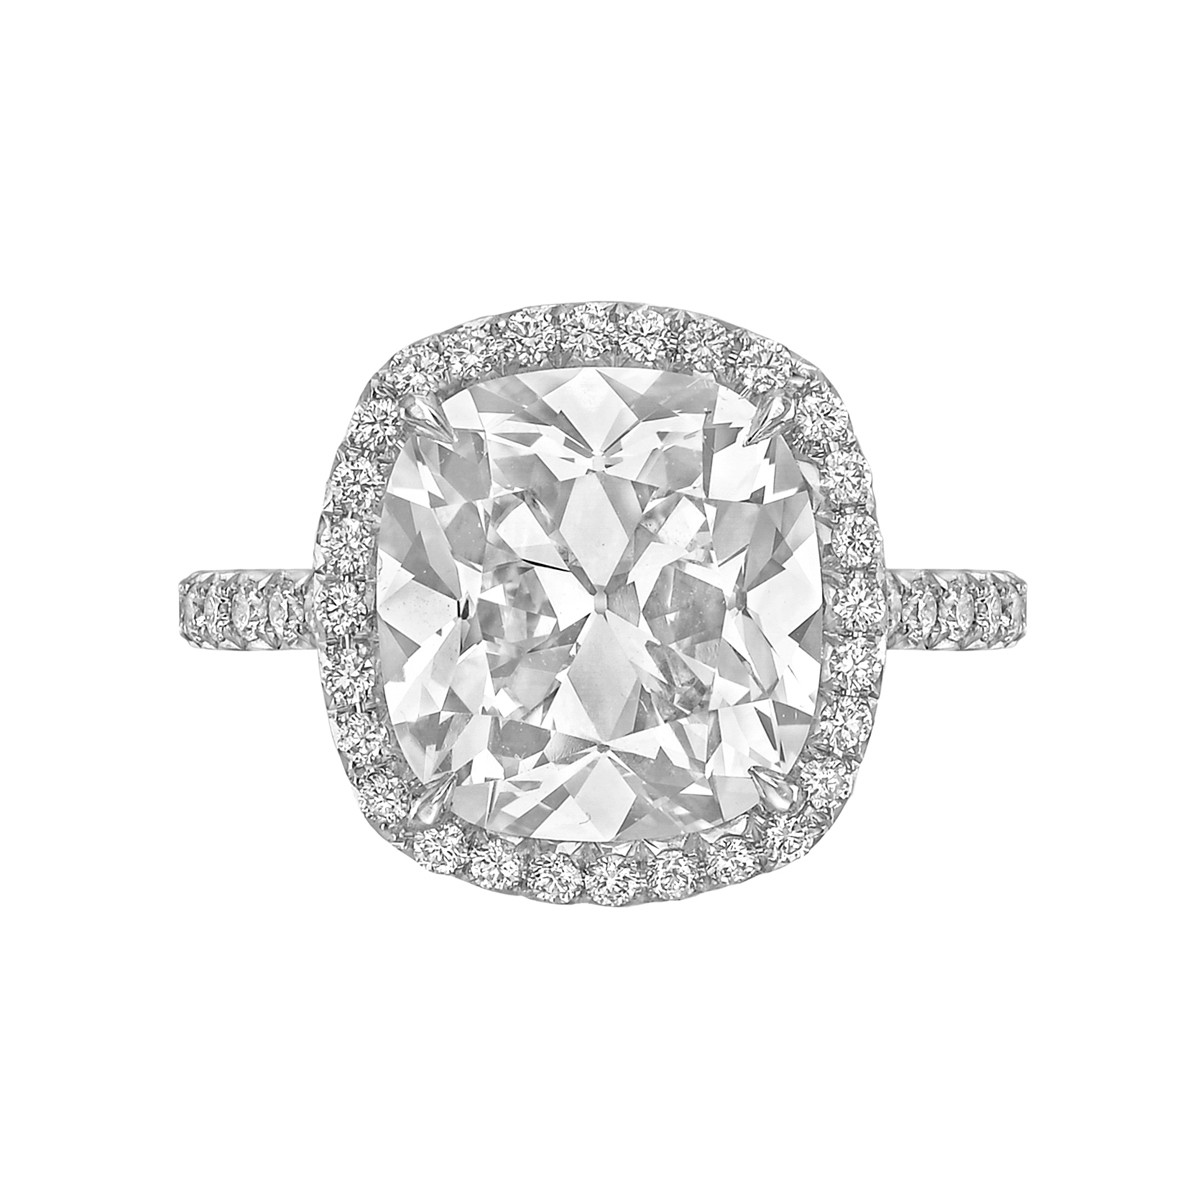 5.08ct Cushion-Cut Diamond Halo Ring